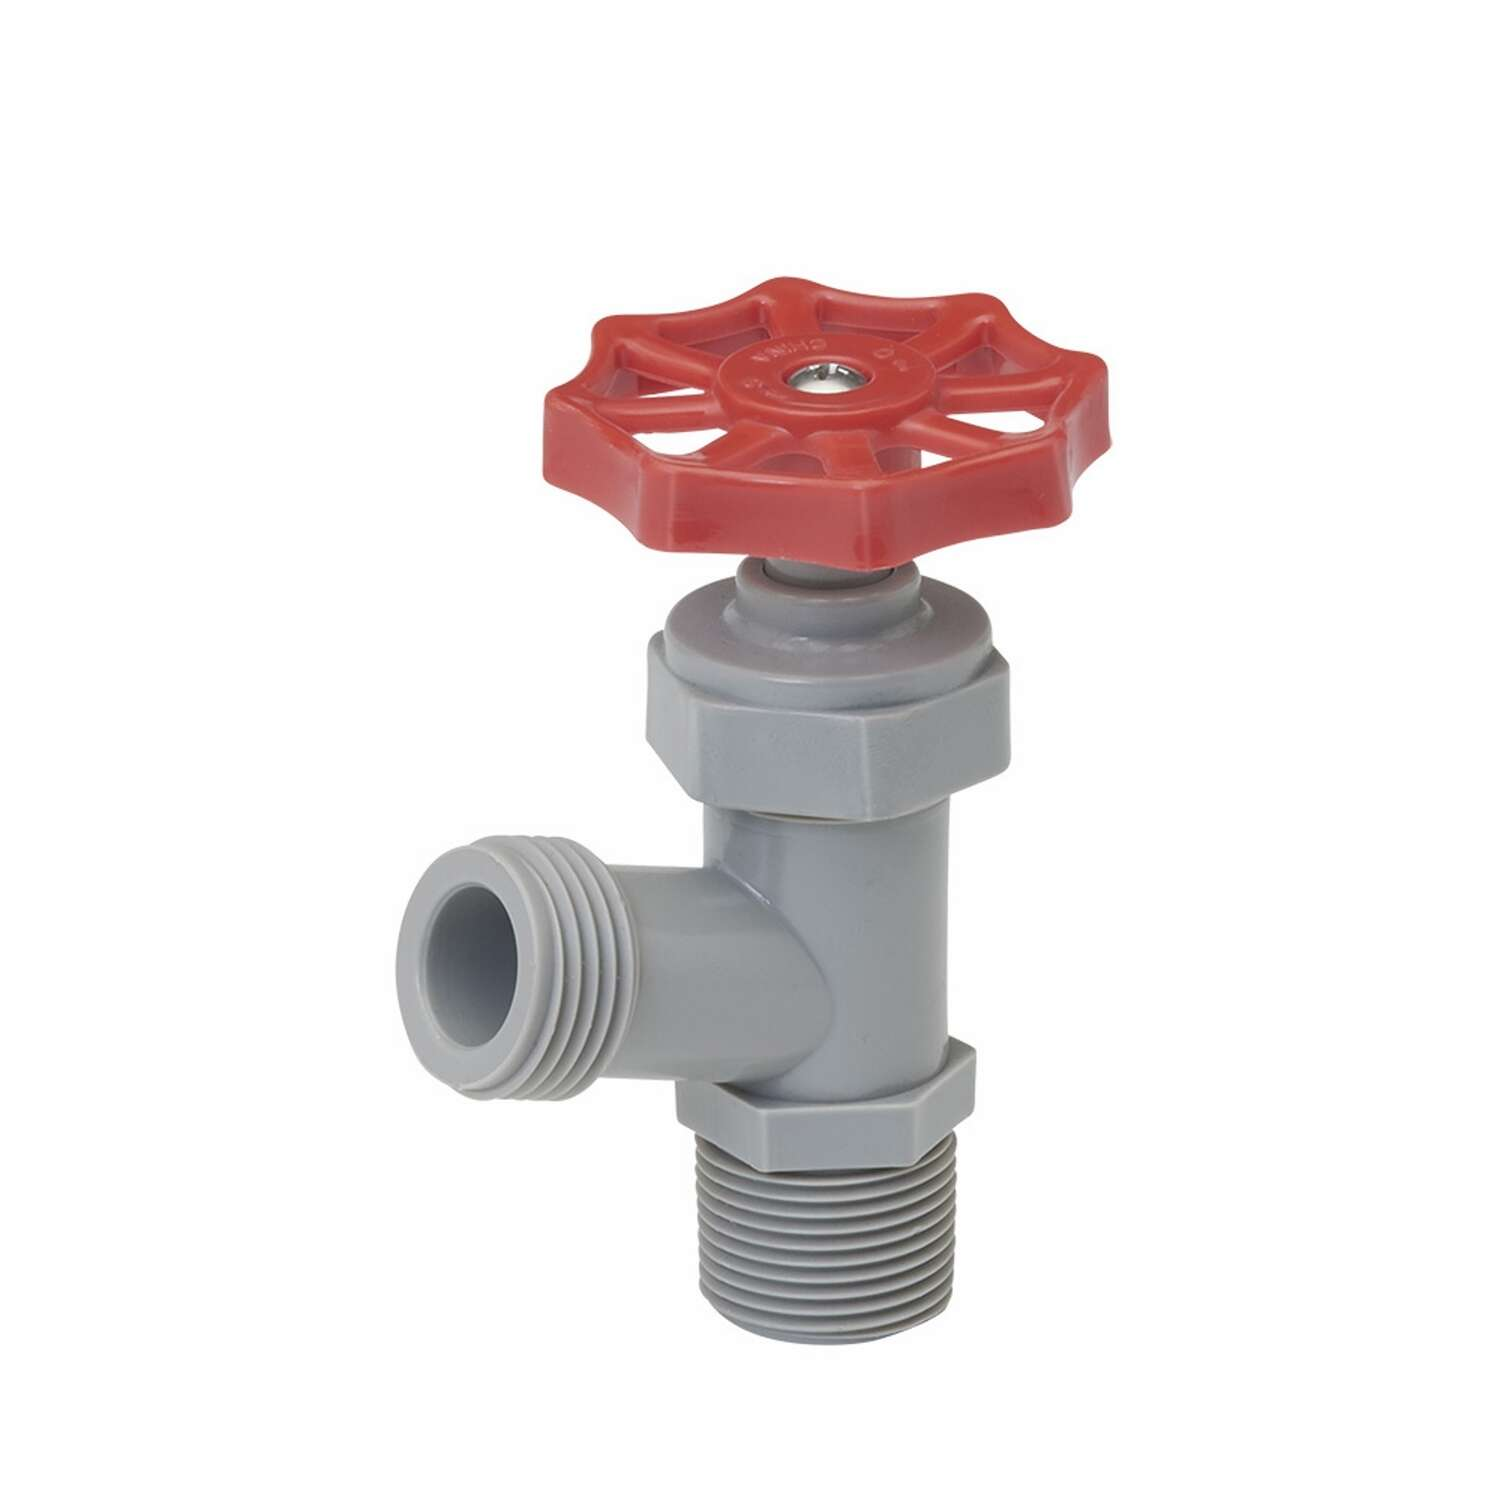 BK Products  Celcon  3/4 in.  x 3/4 in.  MHT  Plastic  Boiler Drain Valve  Lead-Free